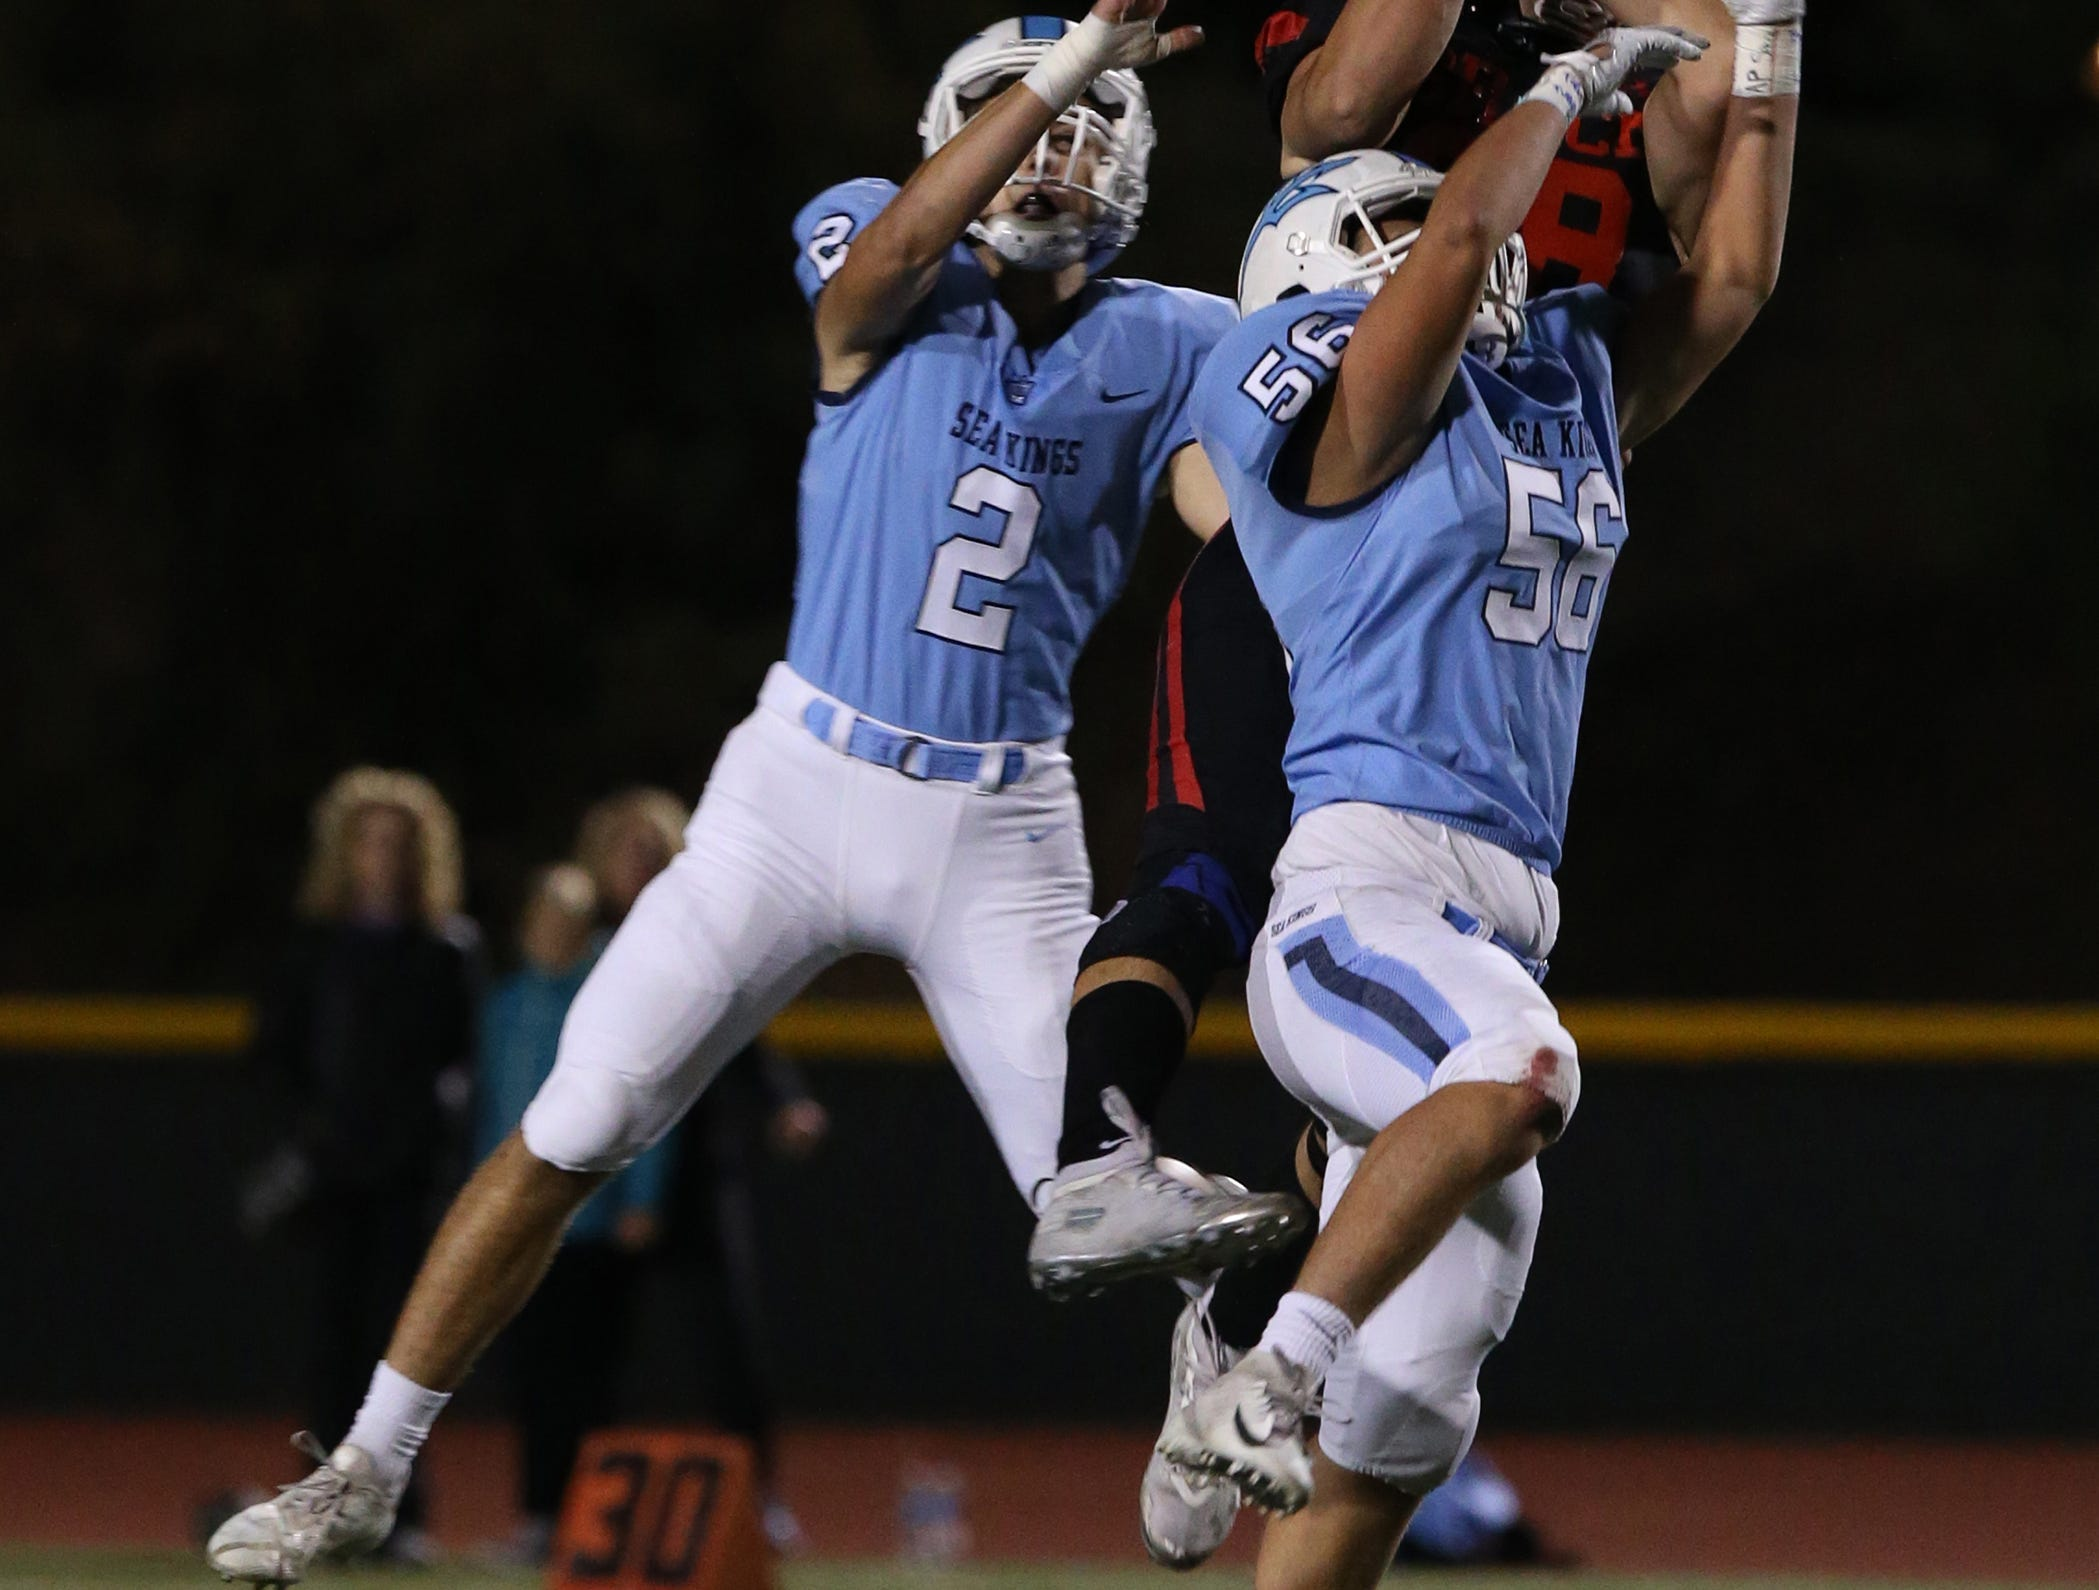 Grace Brethren's Avery Cook makes a spectacular catch between Corona del Mar's Jack Elliott and Cole Rener during the Lancers' 26-14 win in the CIF-SS Division 4 championship game Saturday night at Royal High.